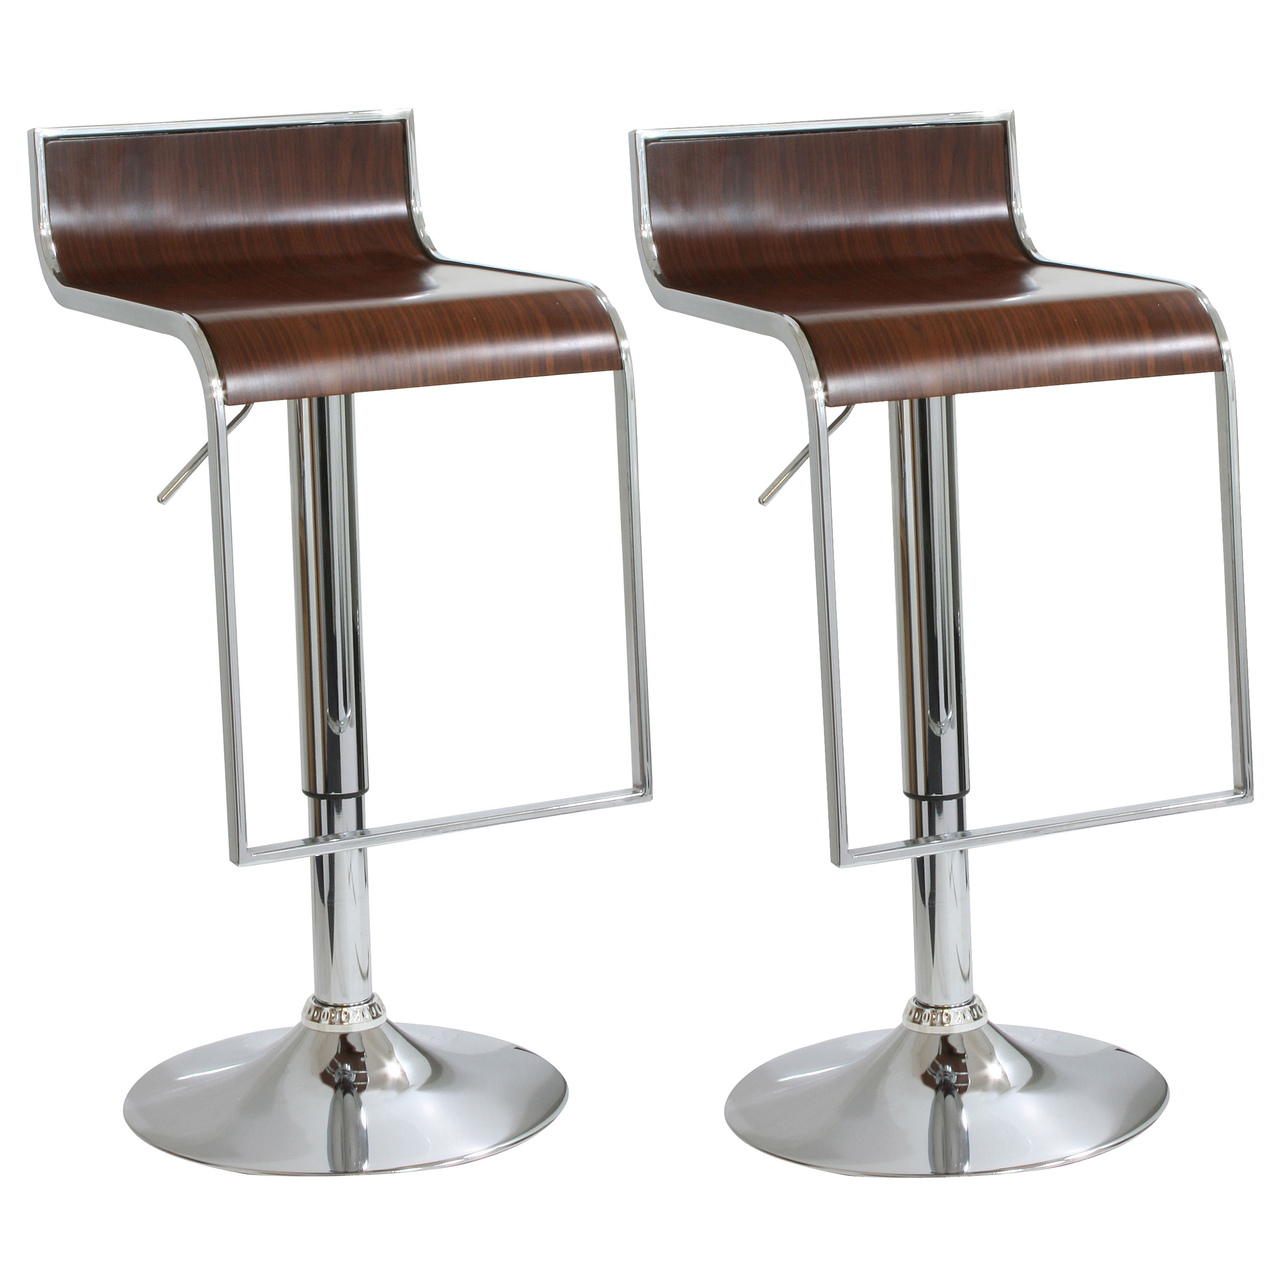 AmeriHome BS2317SET 2 Piece Bent Wood Bar Stool Set